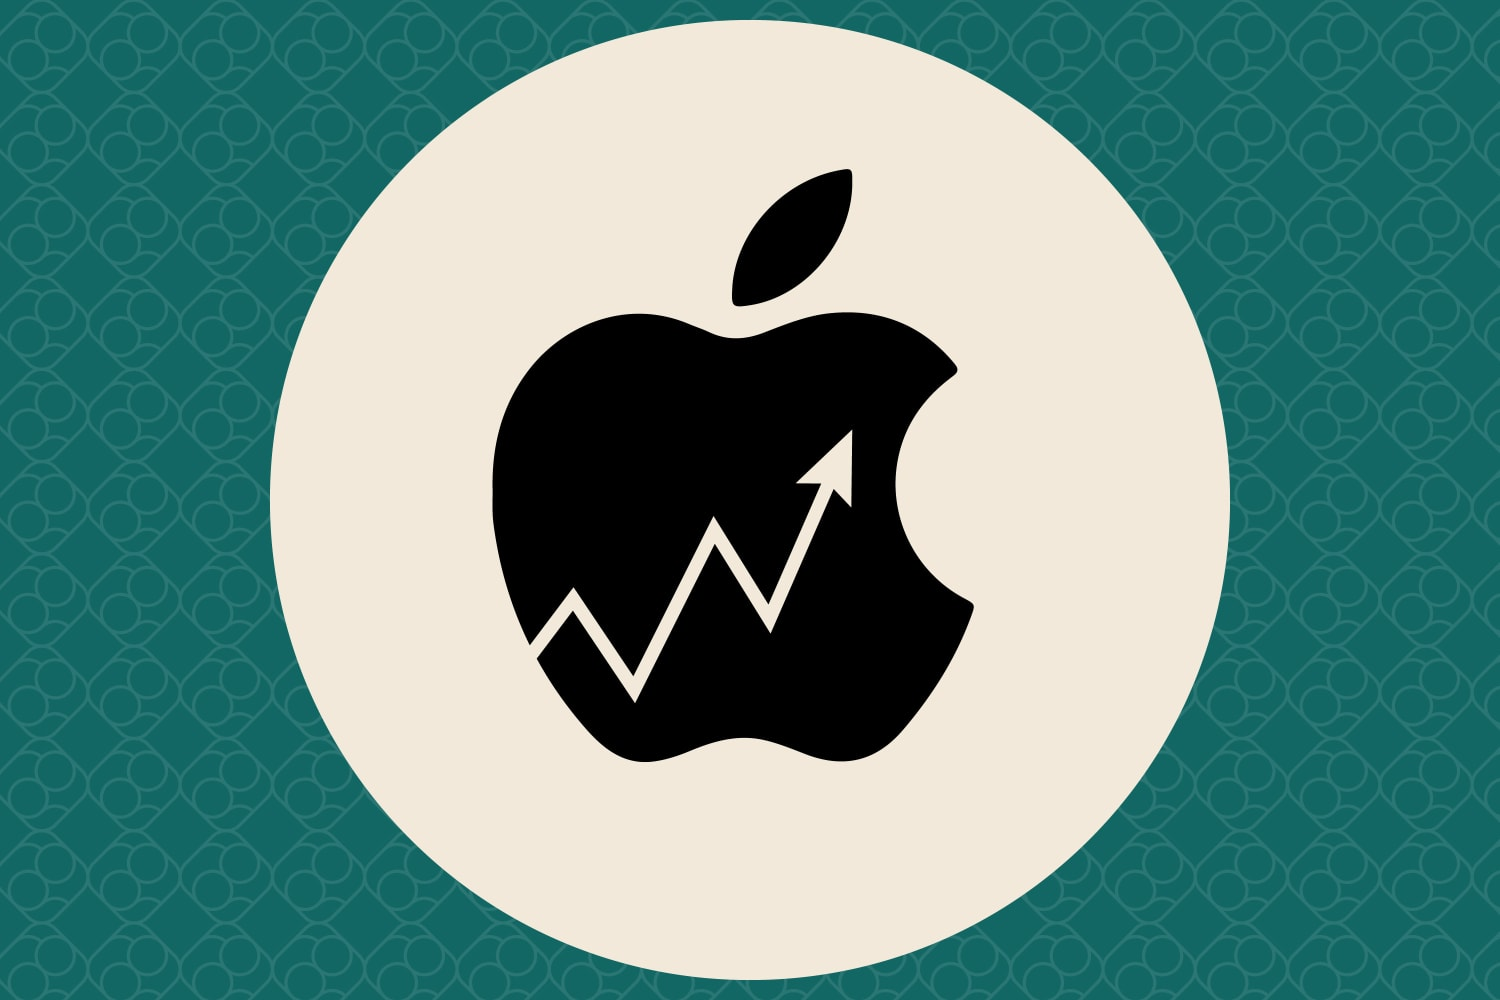 apple-stock-to-see-resurgence-after-iphone-12-event-drop-20201019-1